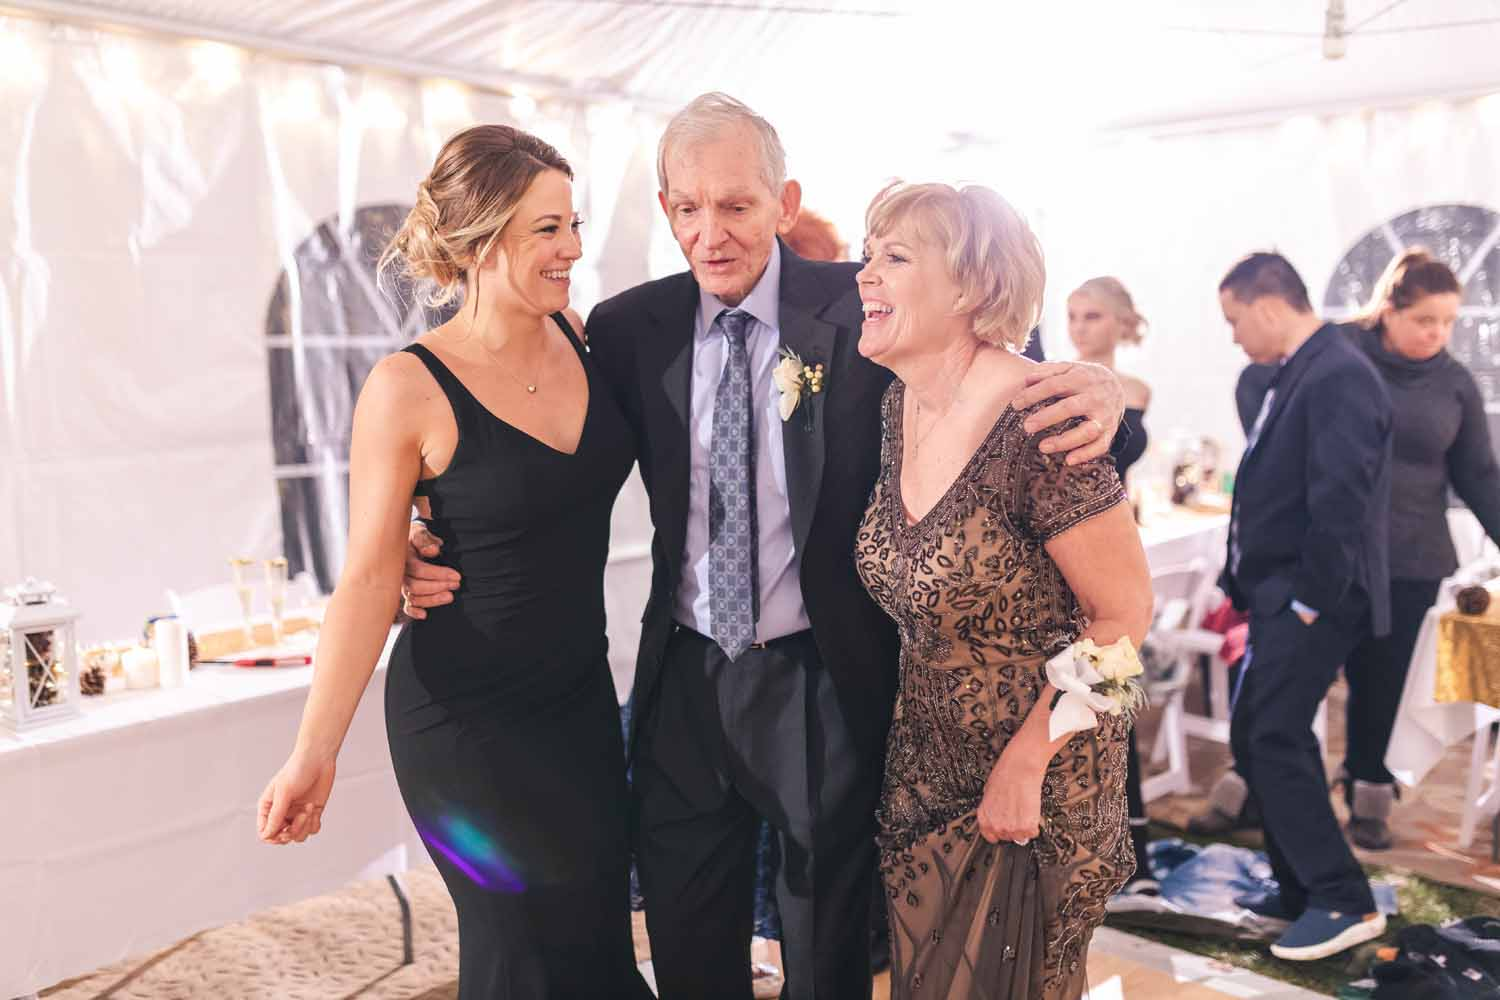 Grandfather dancing with daughter and granddaughter